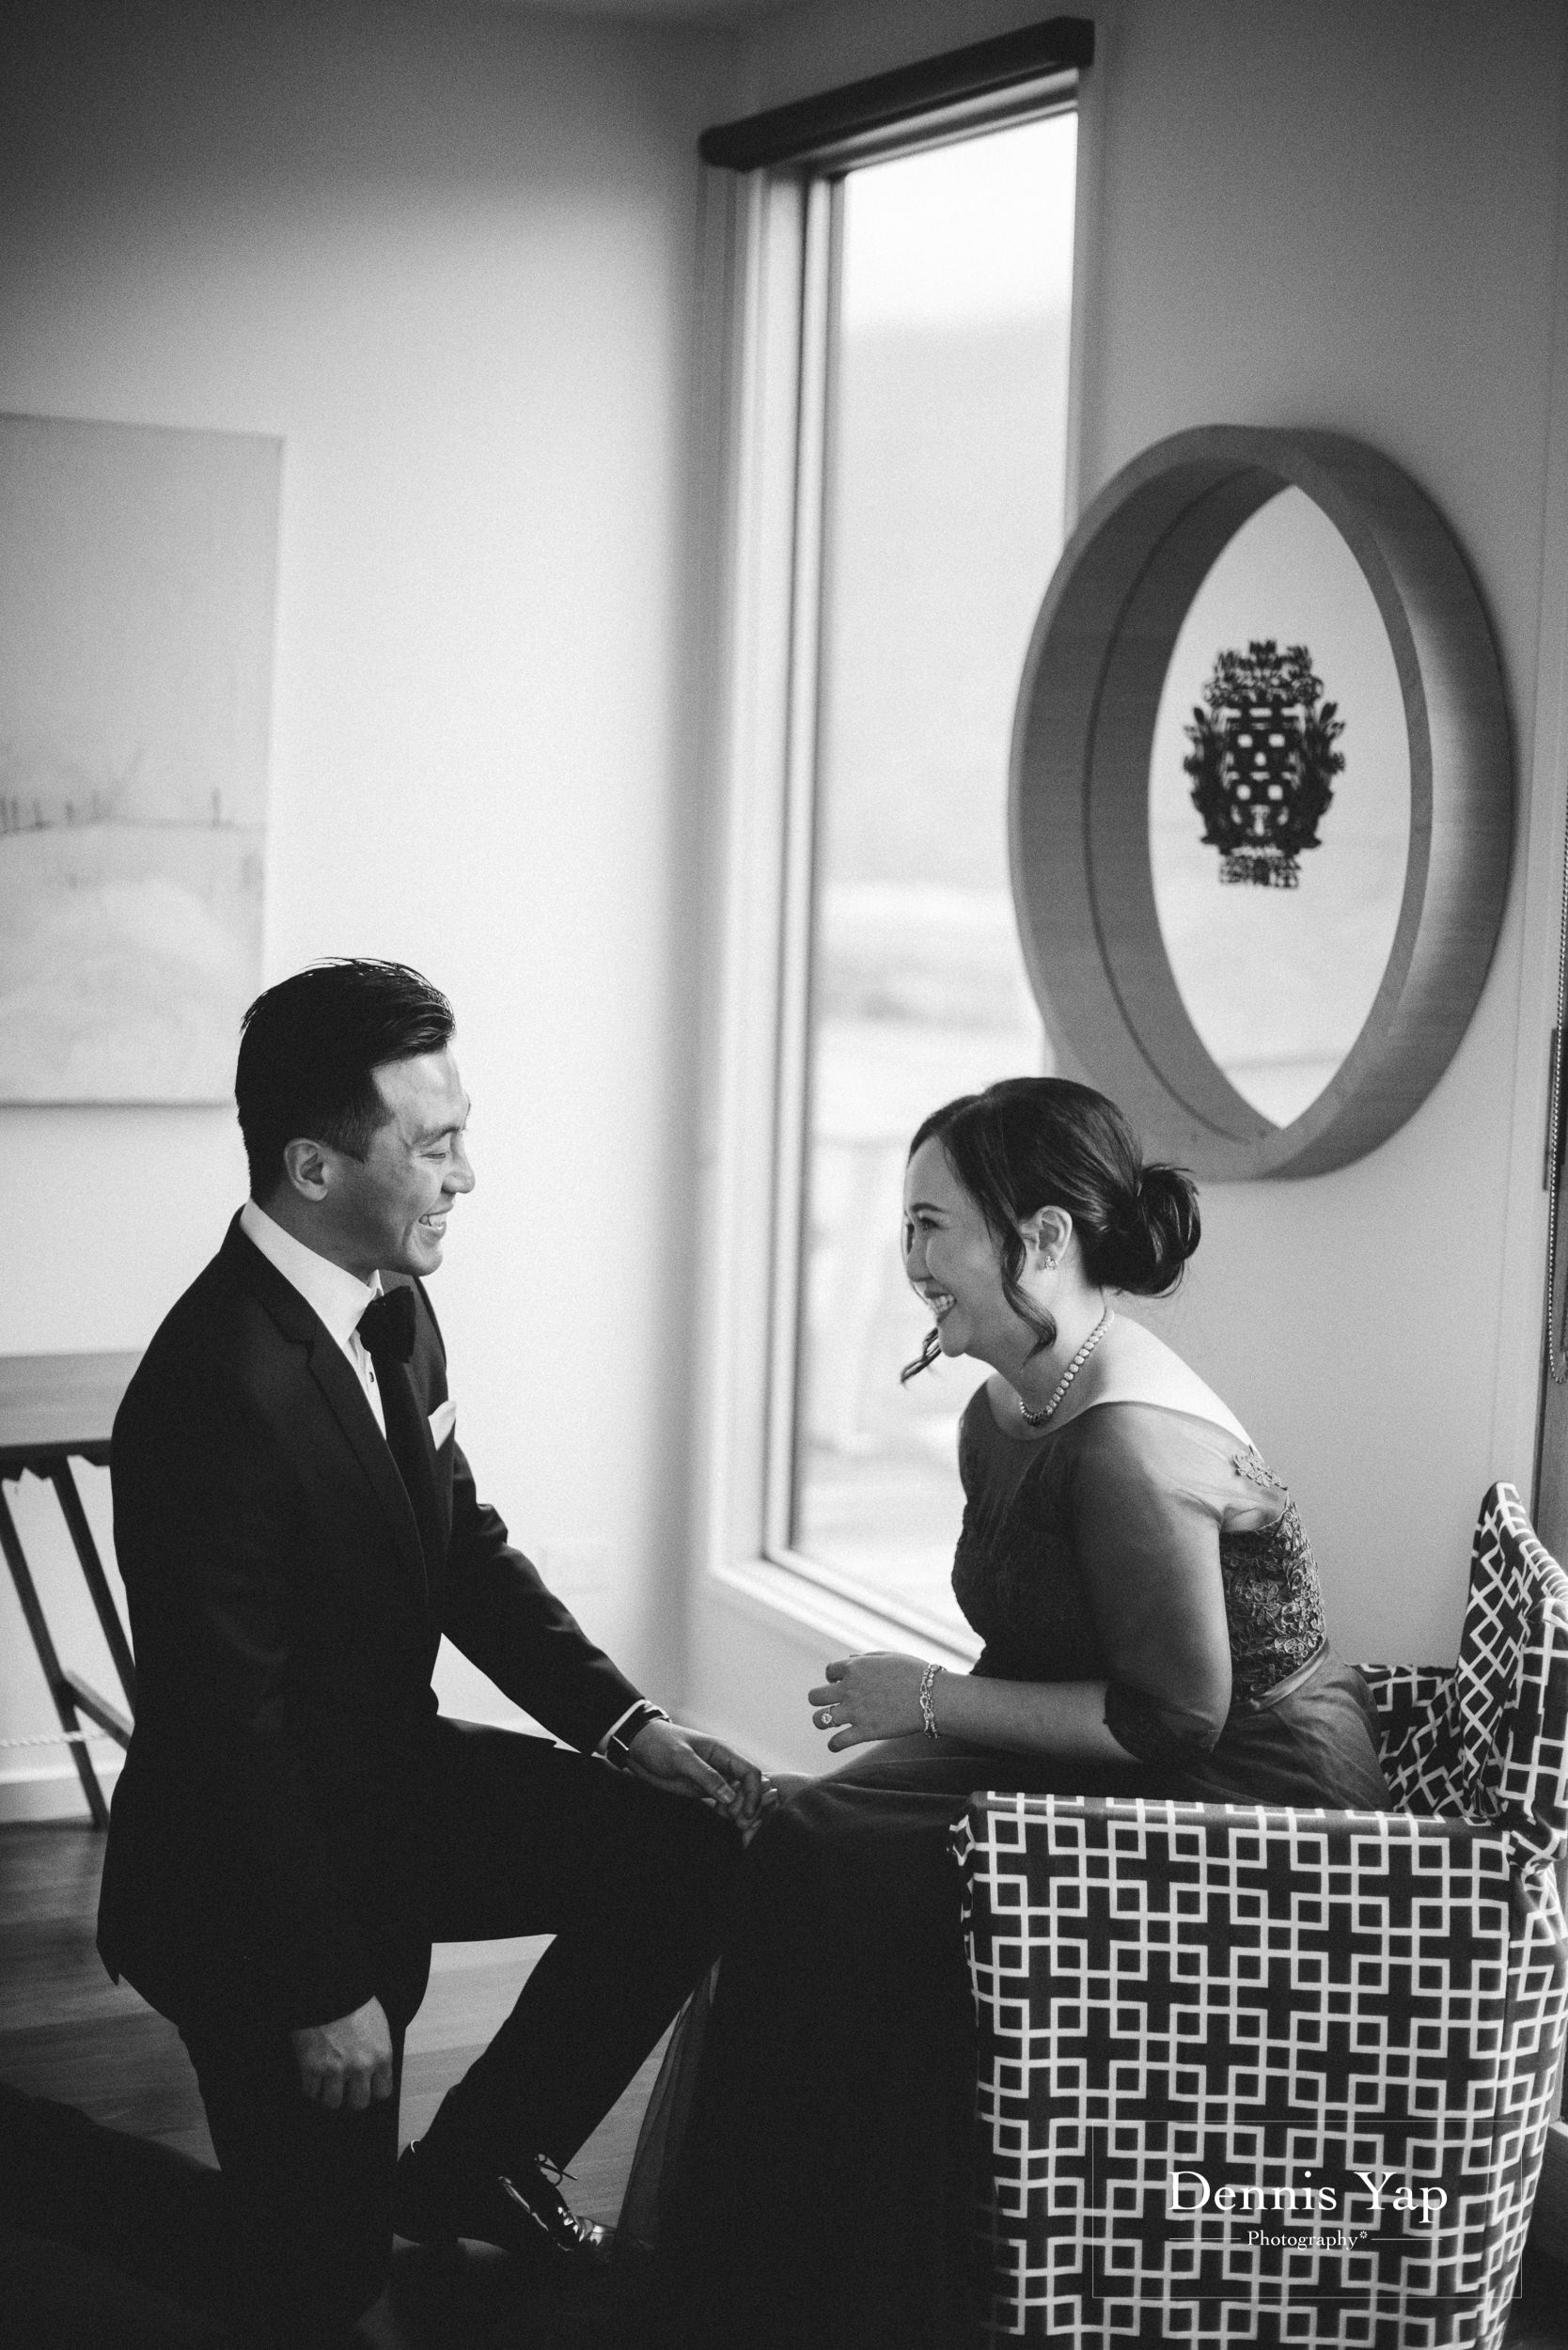 tony daphne wedding day melbourne RACV dennis yap photography malaysia top photographer beloved real moments-18.jpg